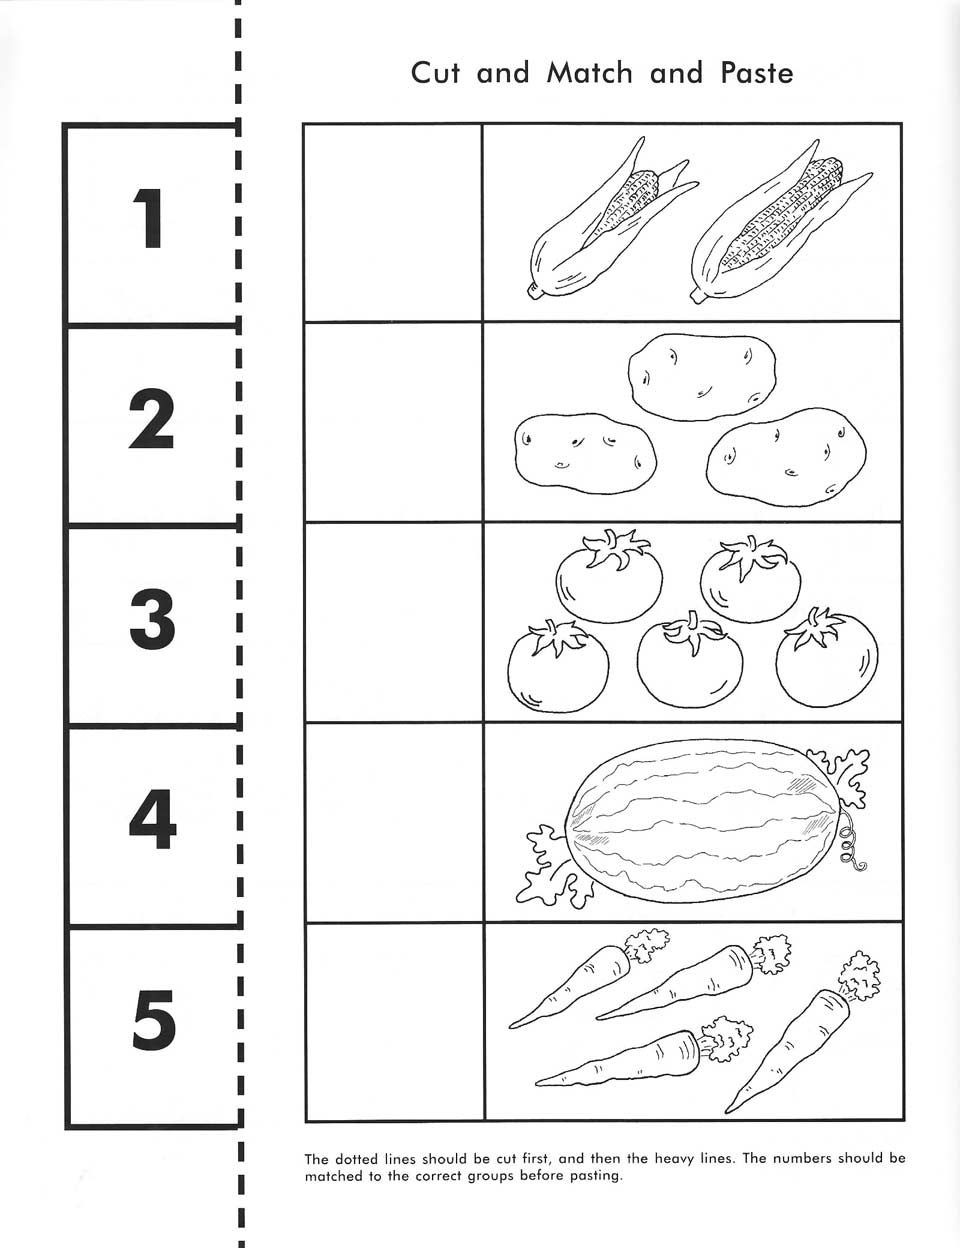 Printable Cut and Paste Worksheets Rod & Staff Preschool Workbooks